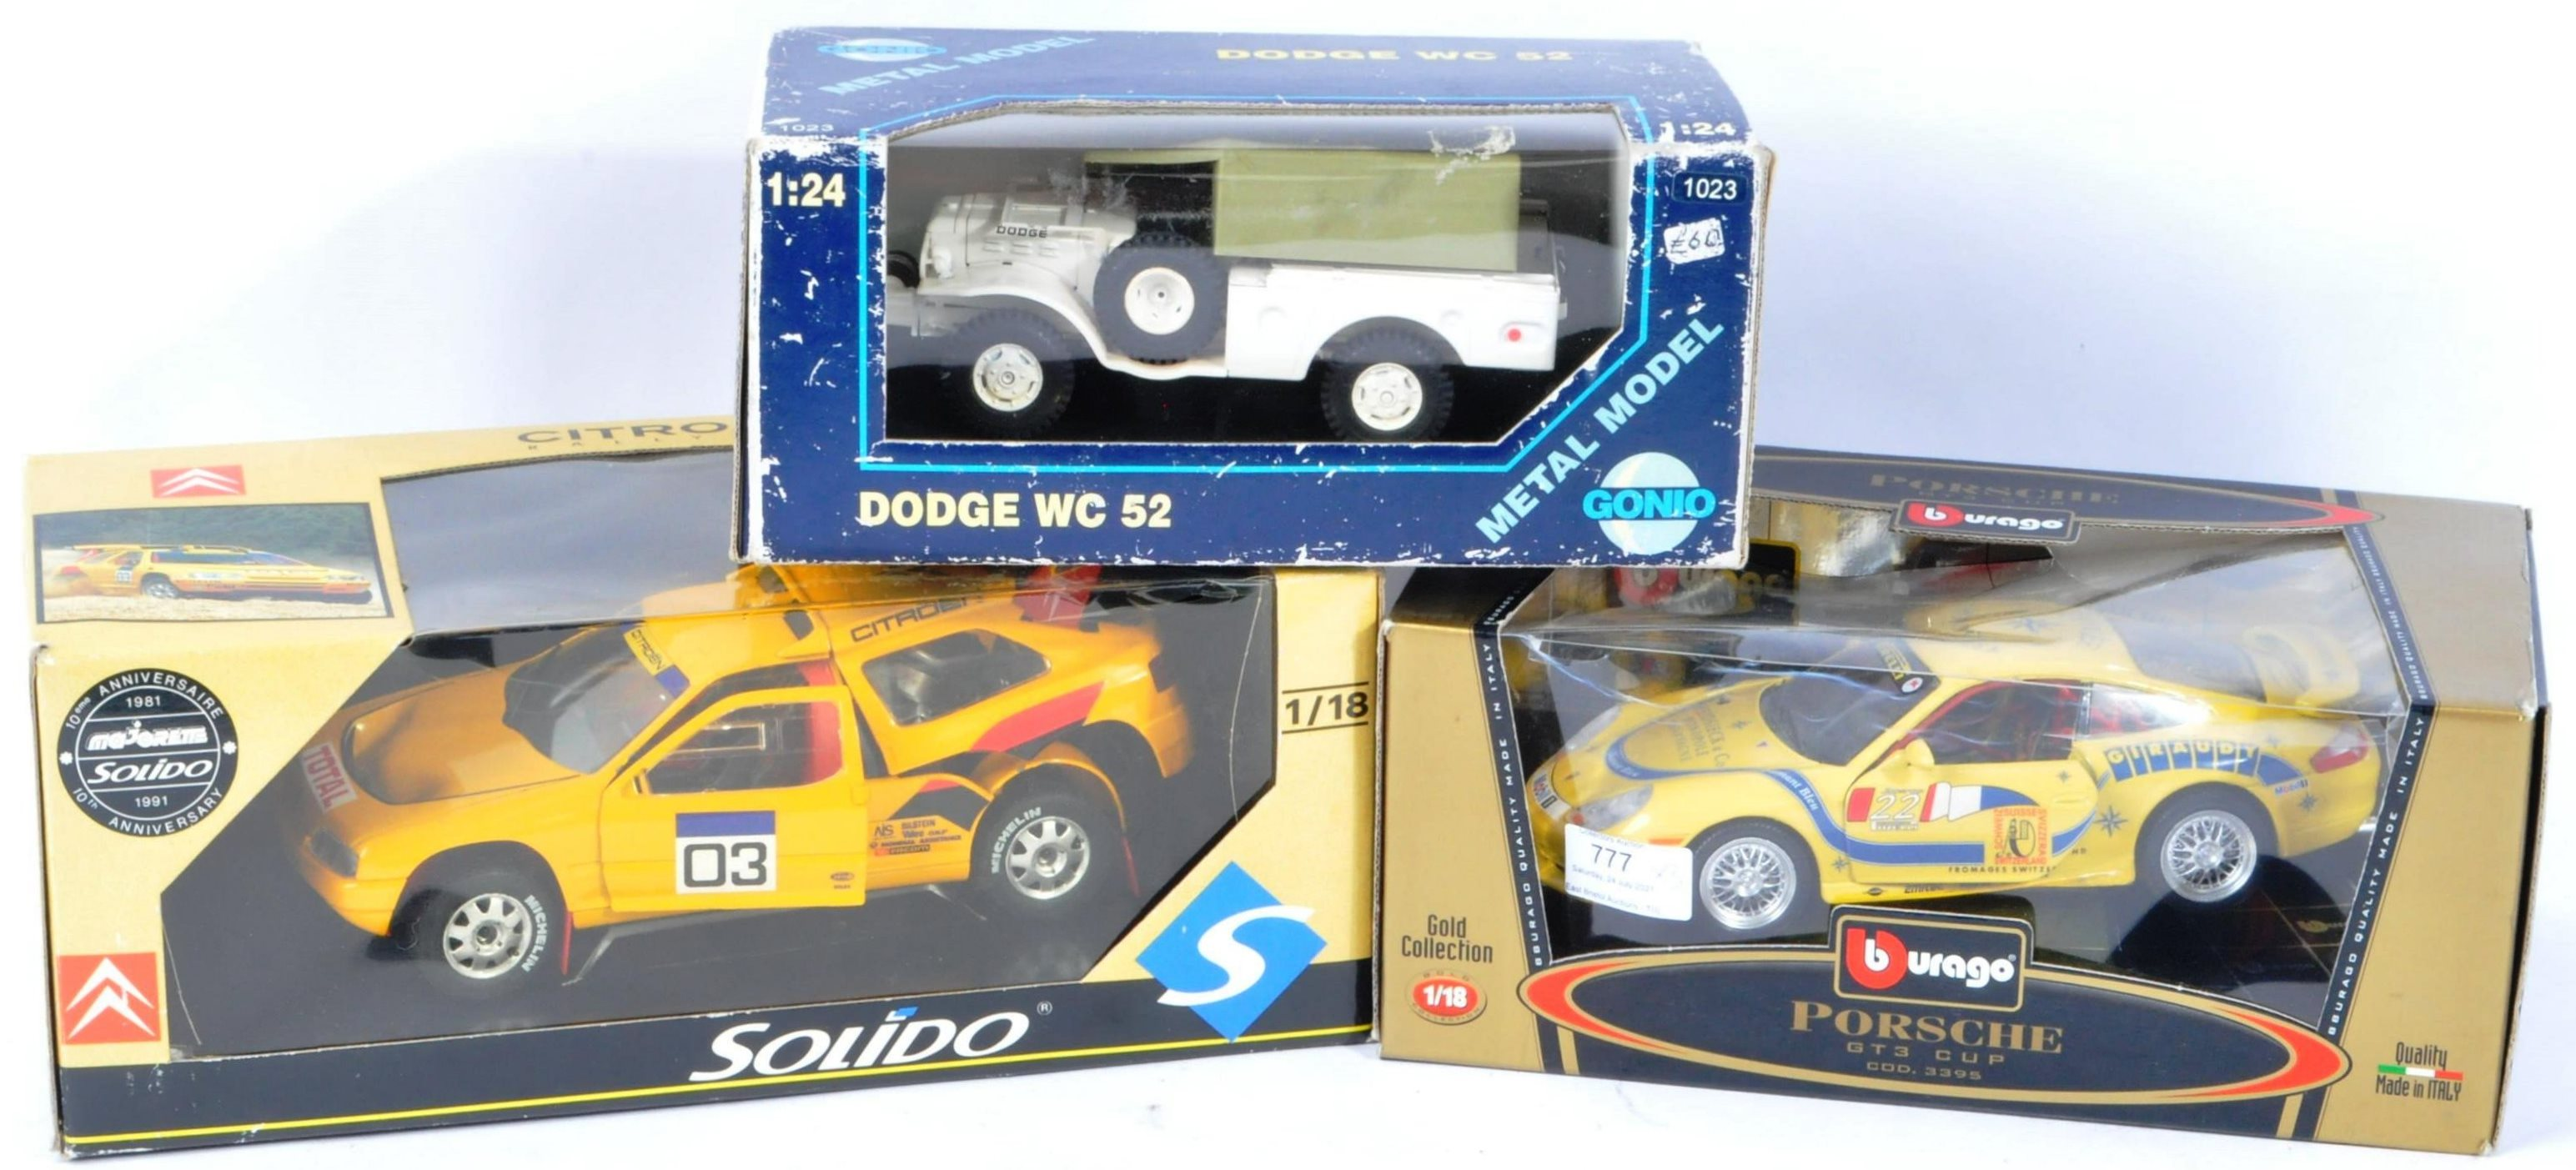 DIECAST - LARGE SCALE BOXED DIECAST MODELS 1/18 AND 1/24